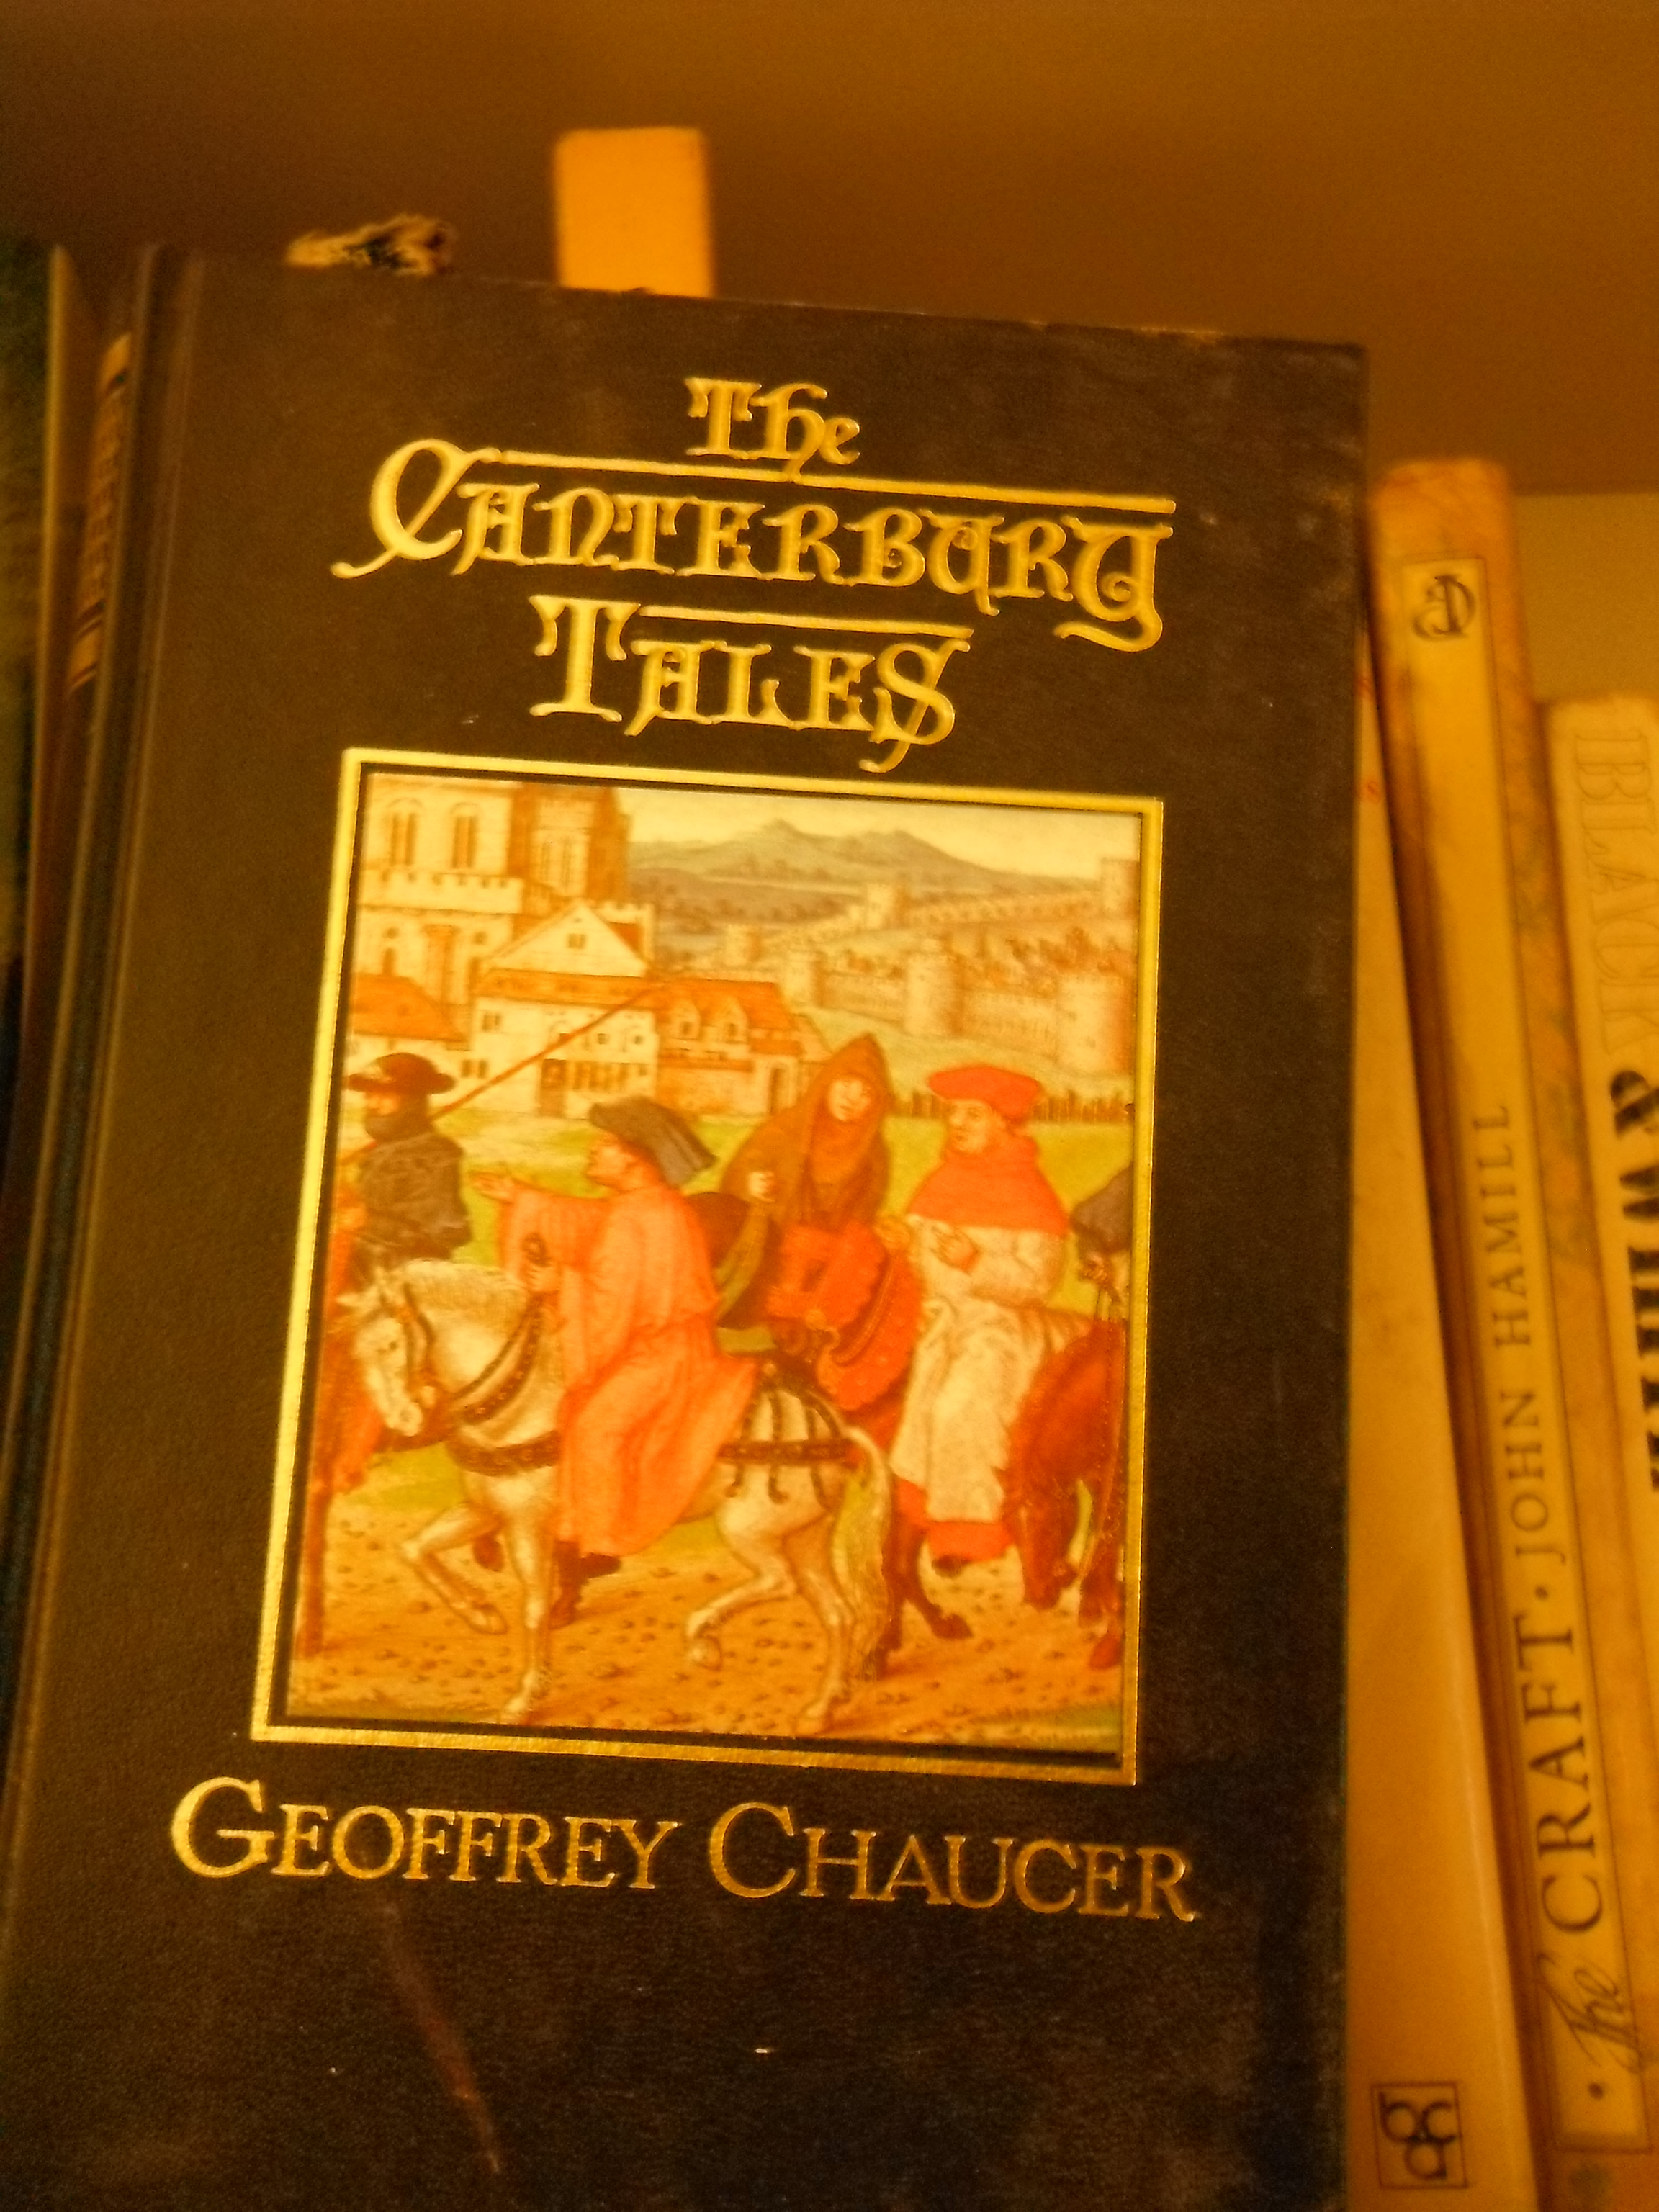 Photo taken by me – front cover to Chaucer's Canterbury Tales